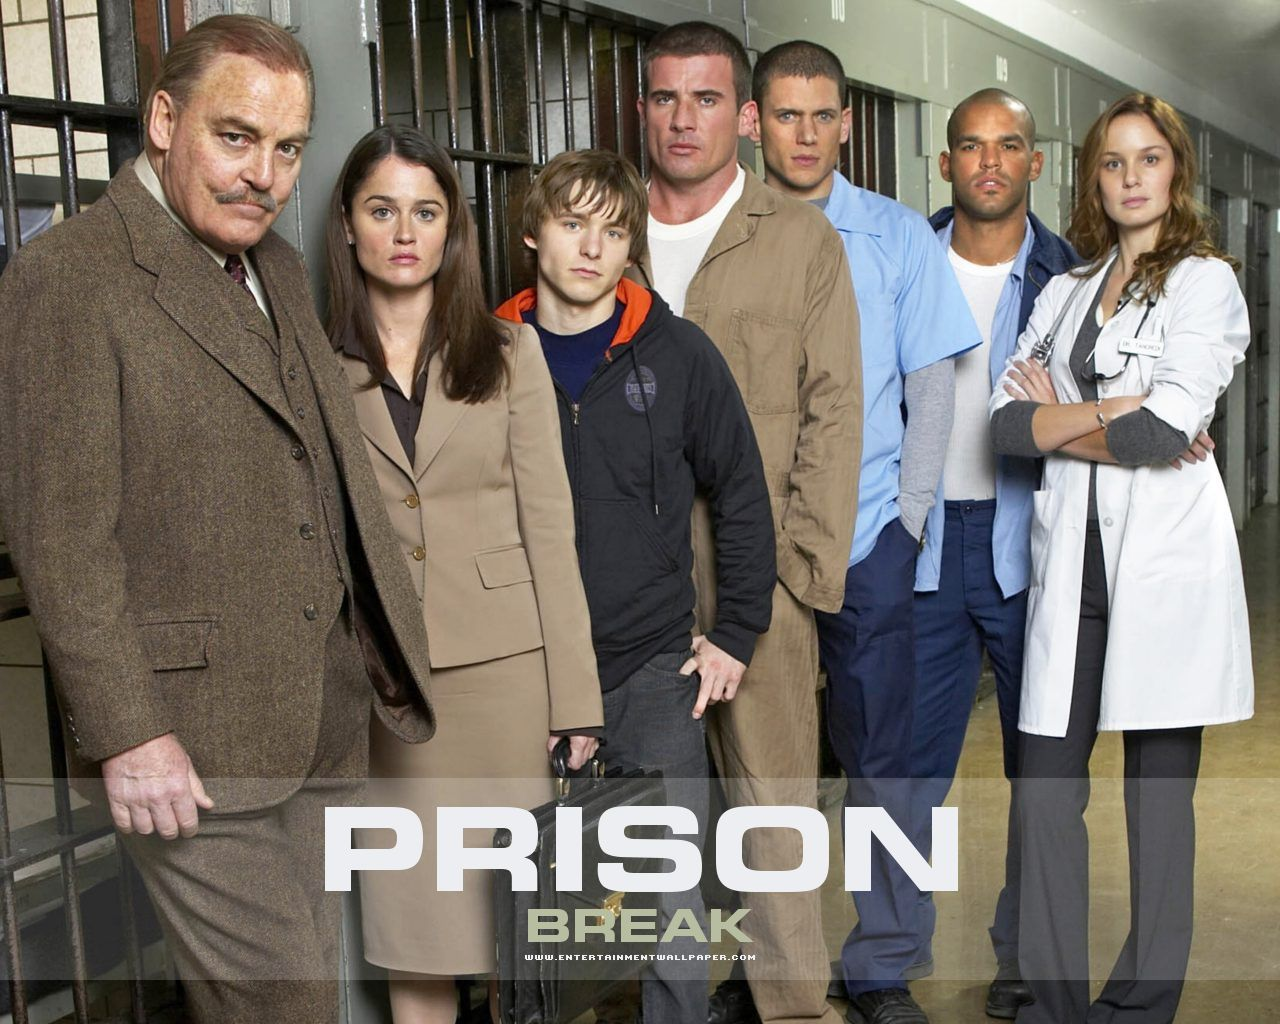 prison break poster gallery2